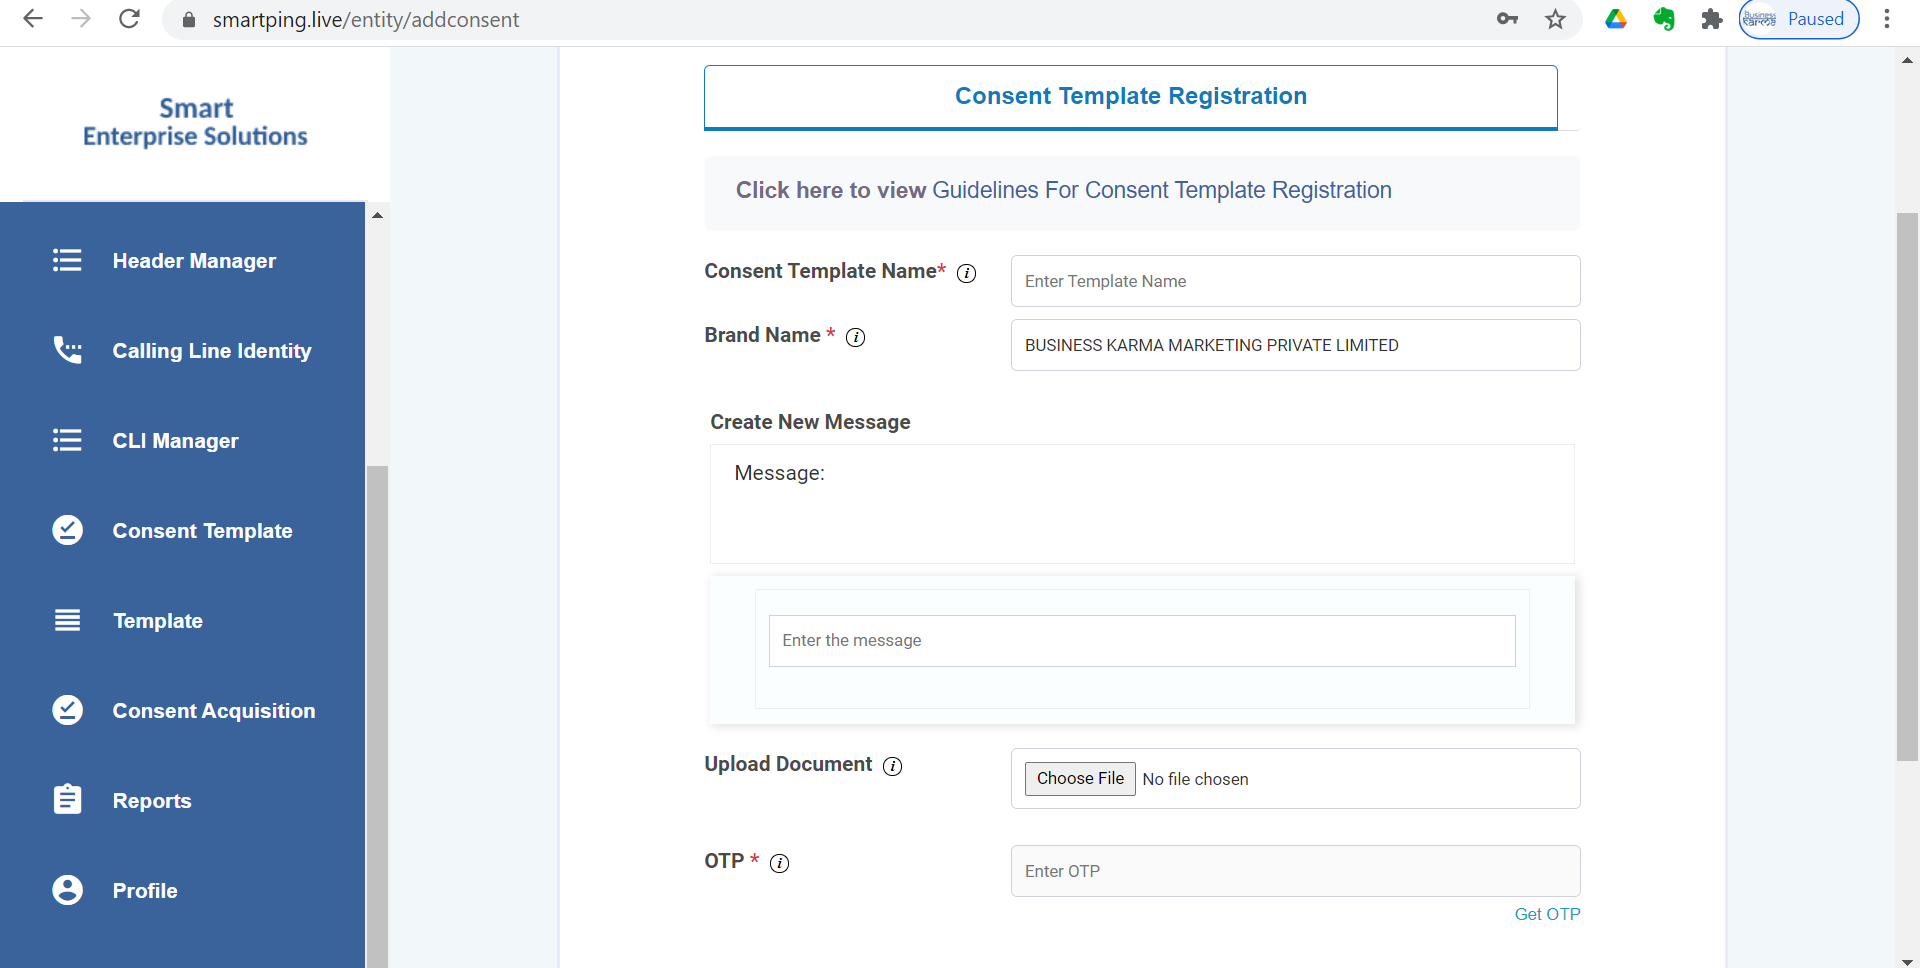 Consent Template Approval process on videocon's Smart Ping portal